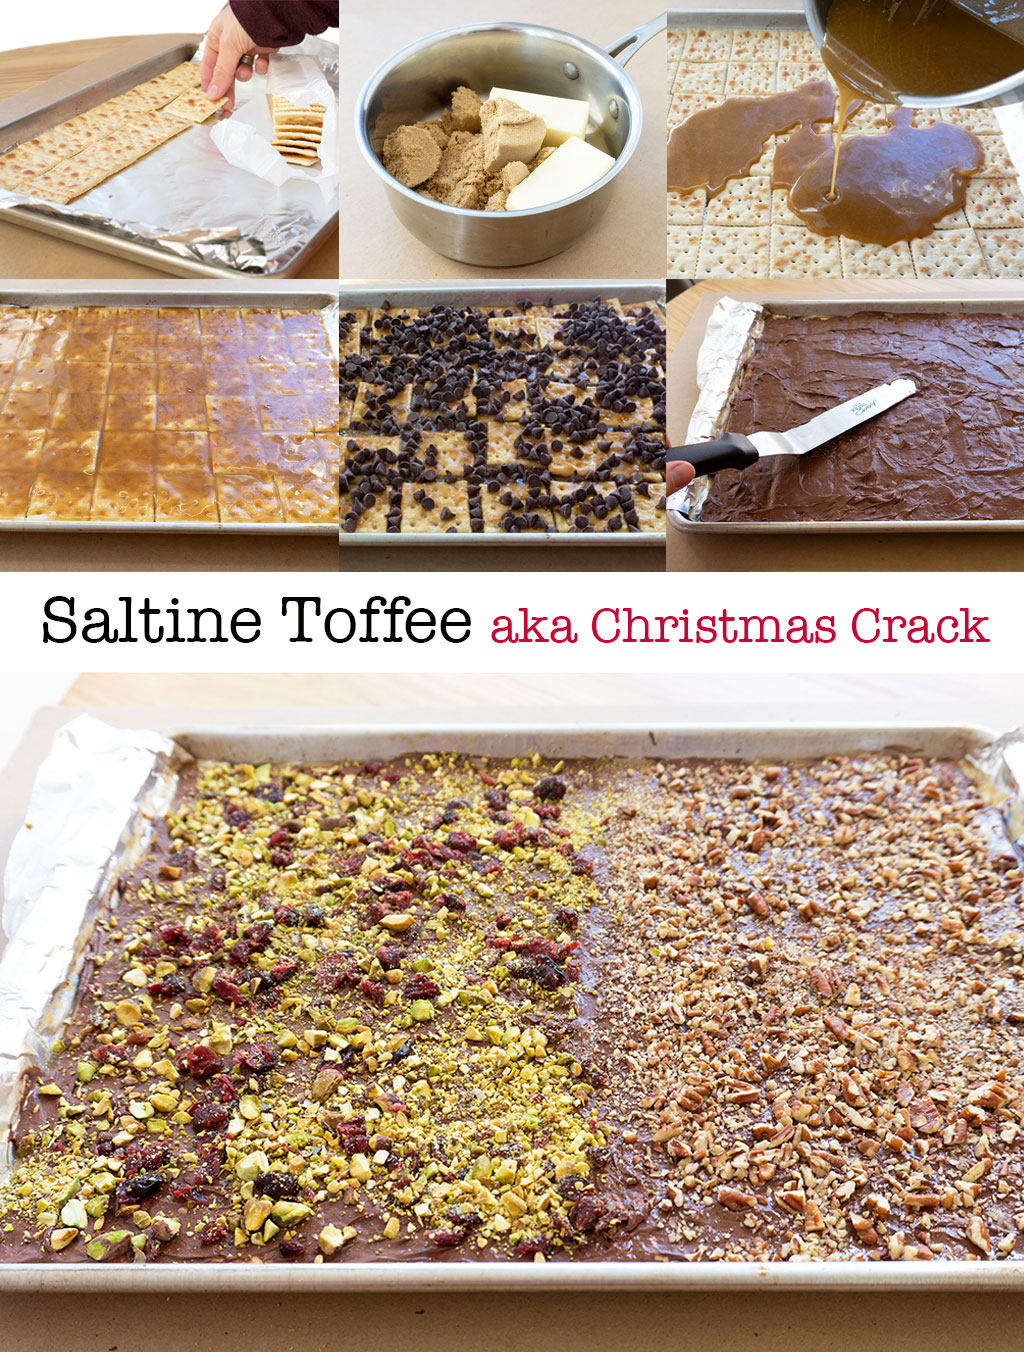 Step by Step photos for making saltine toffee aka Christmas Crack